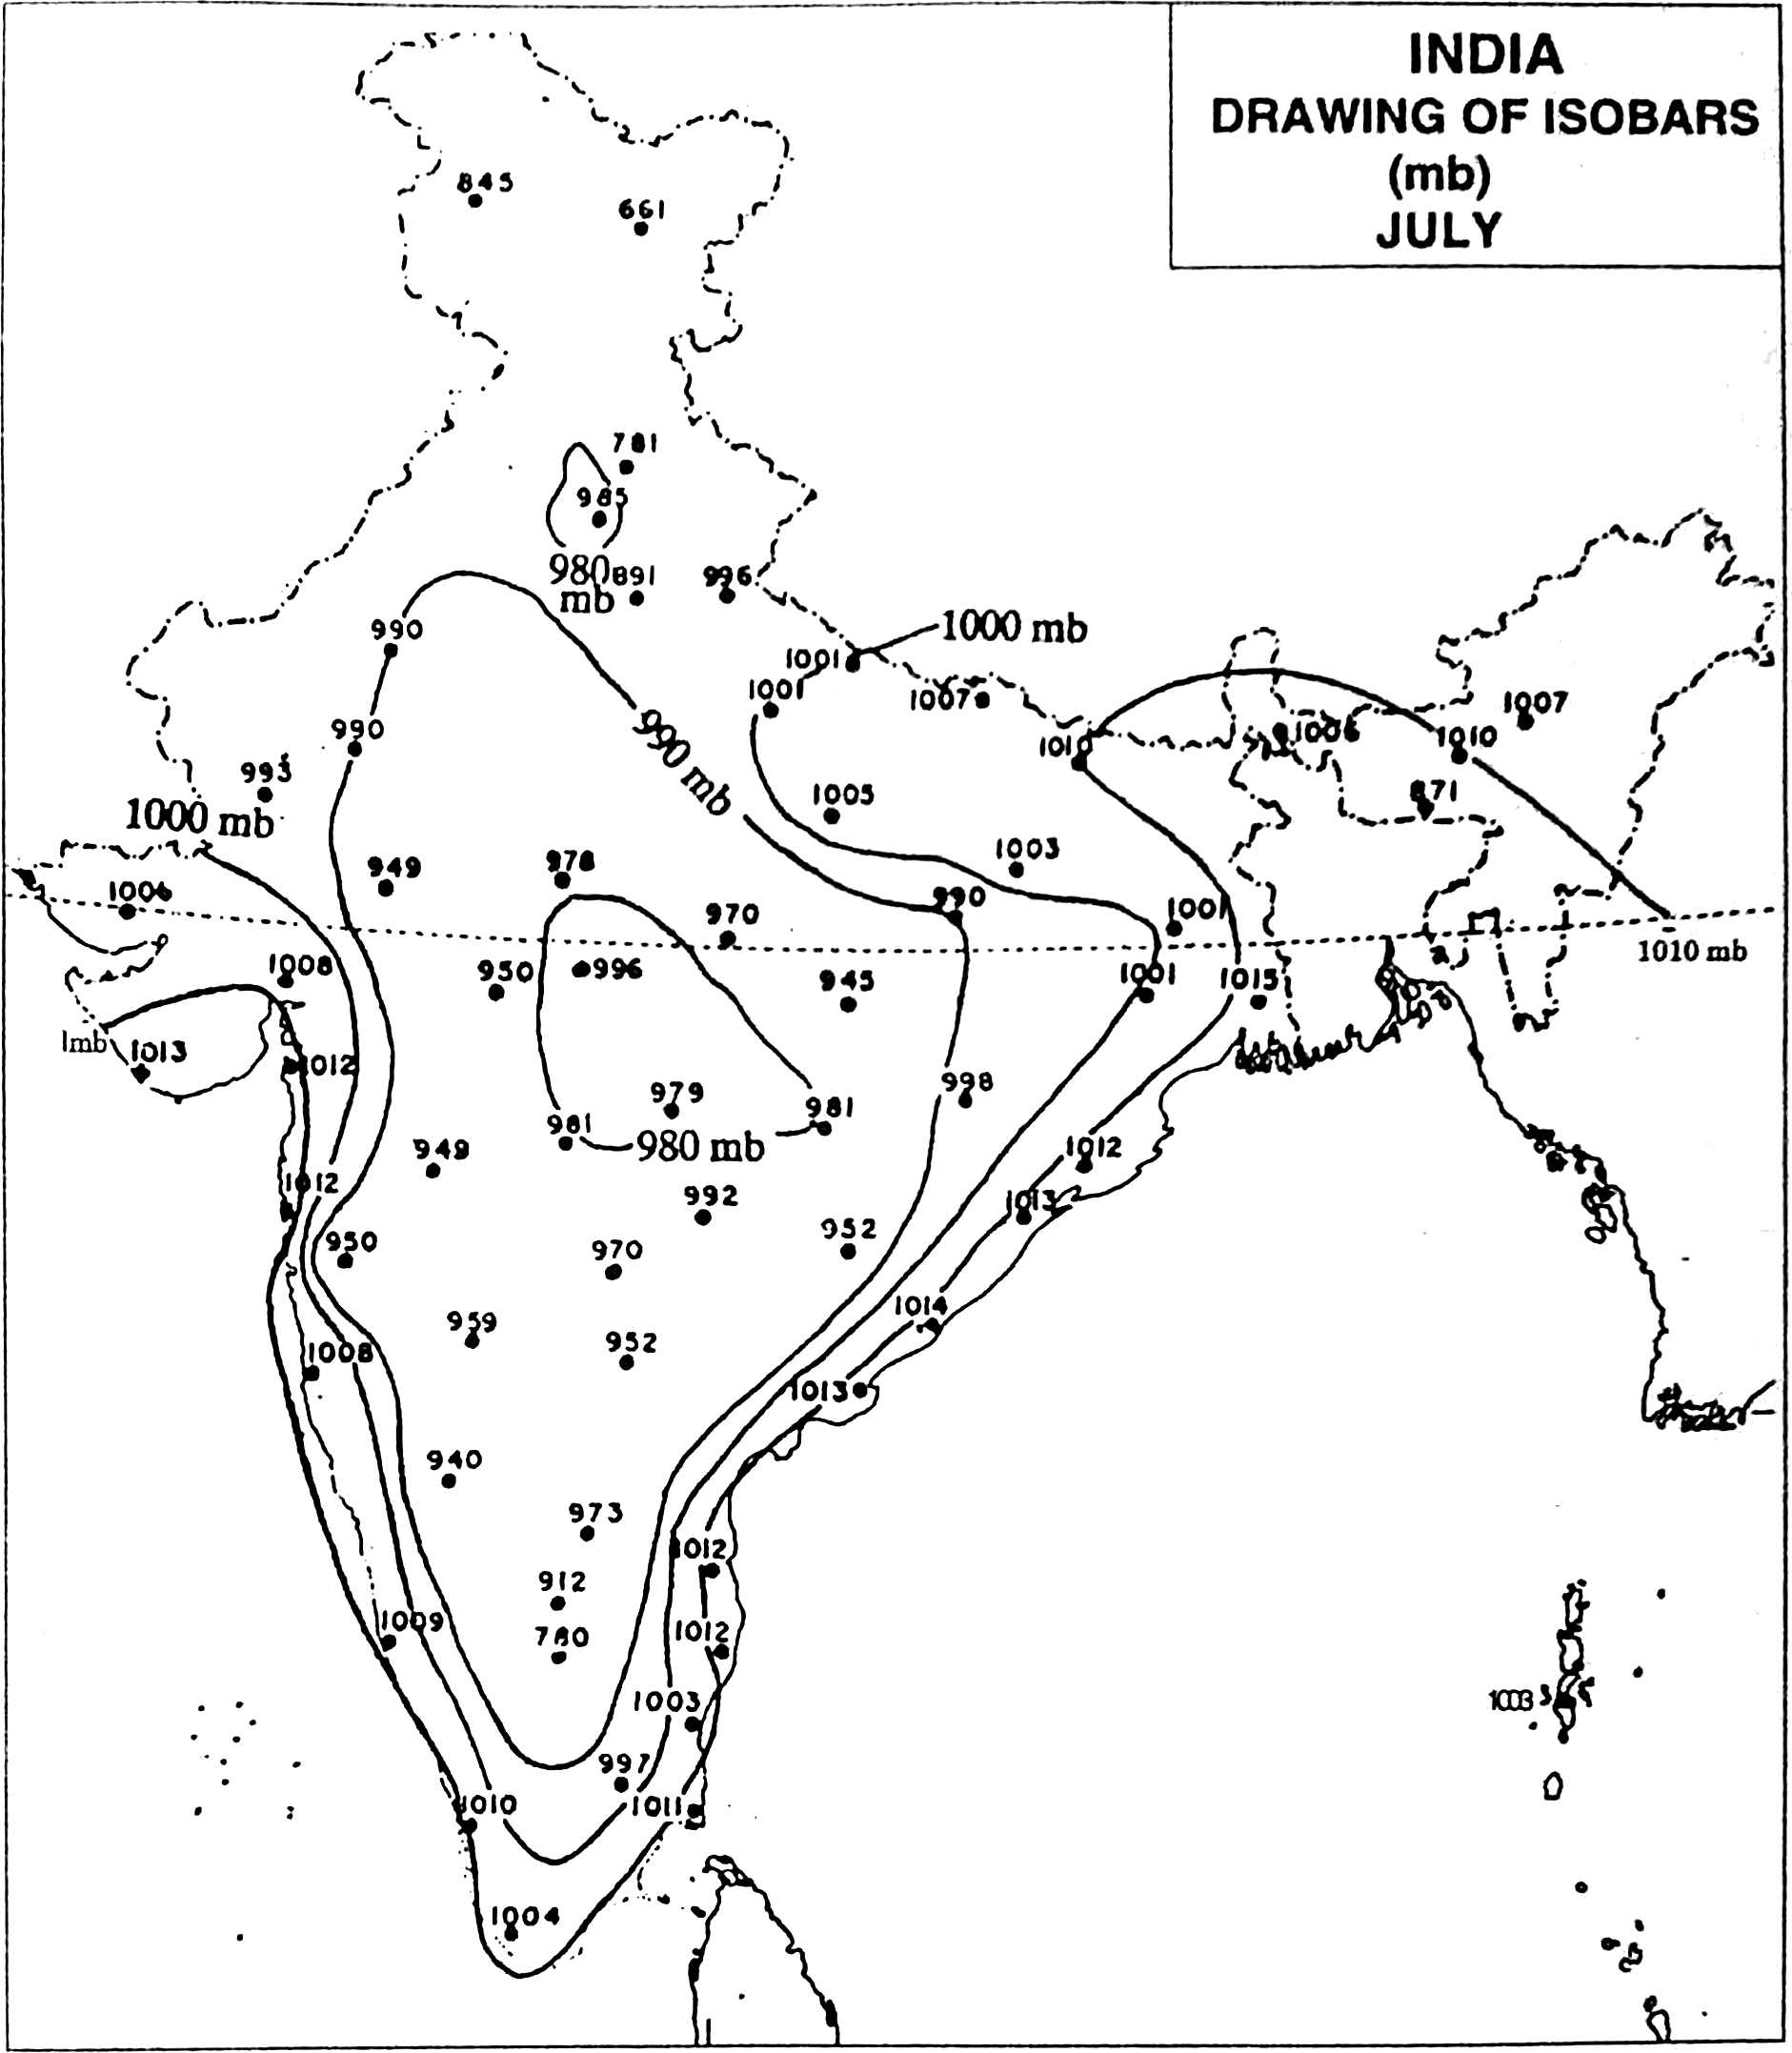 Draw Isobars On The Map Of India Shown In The Following